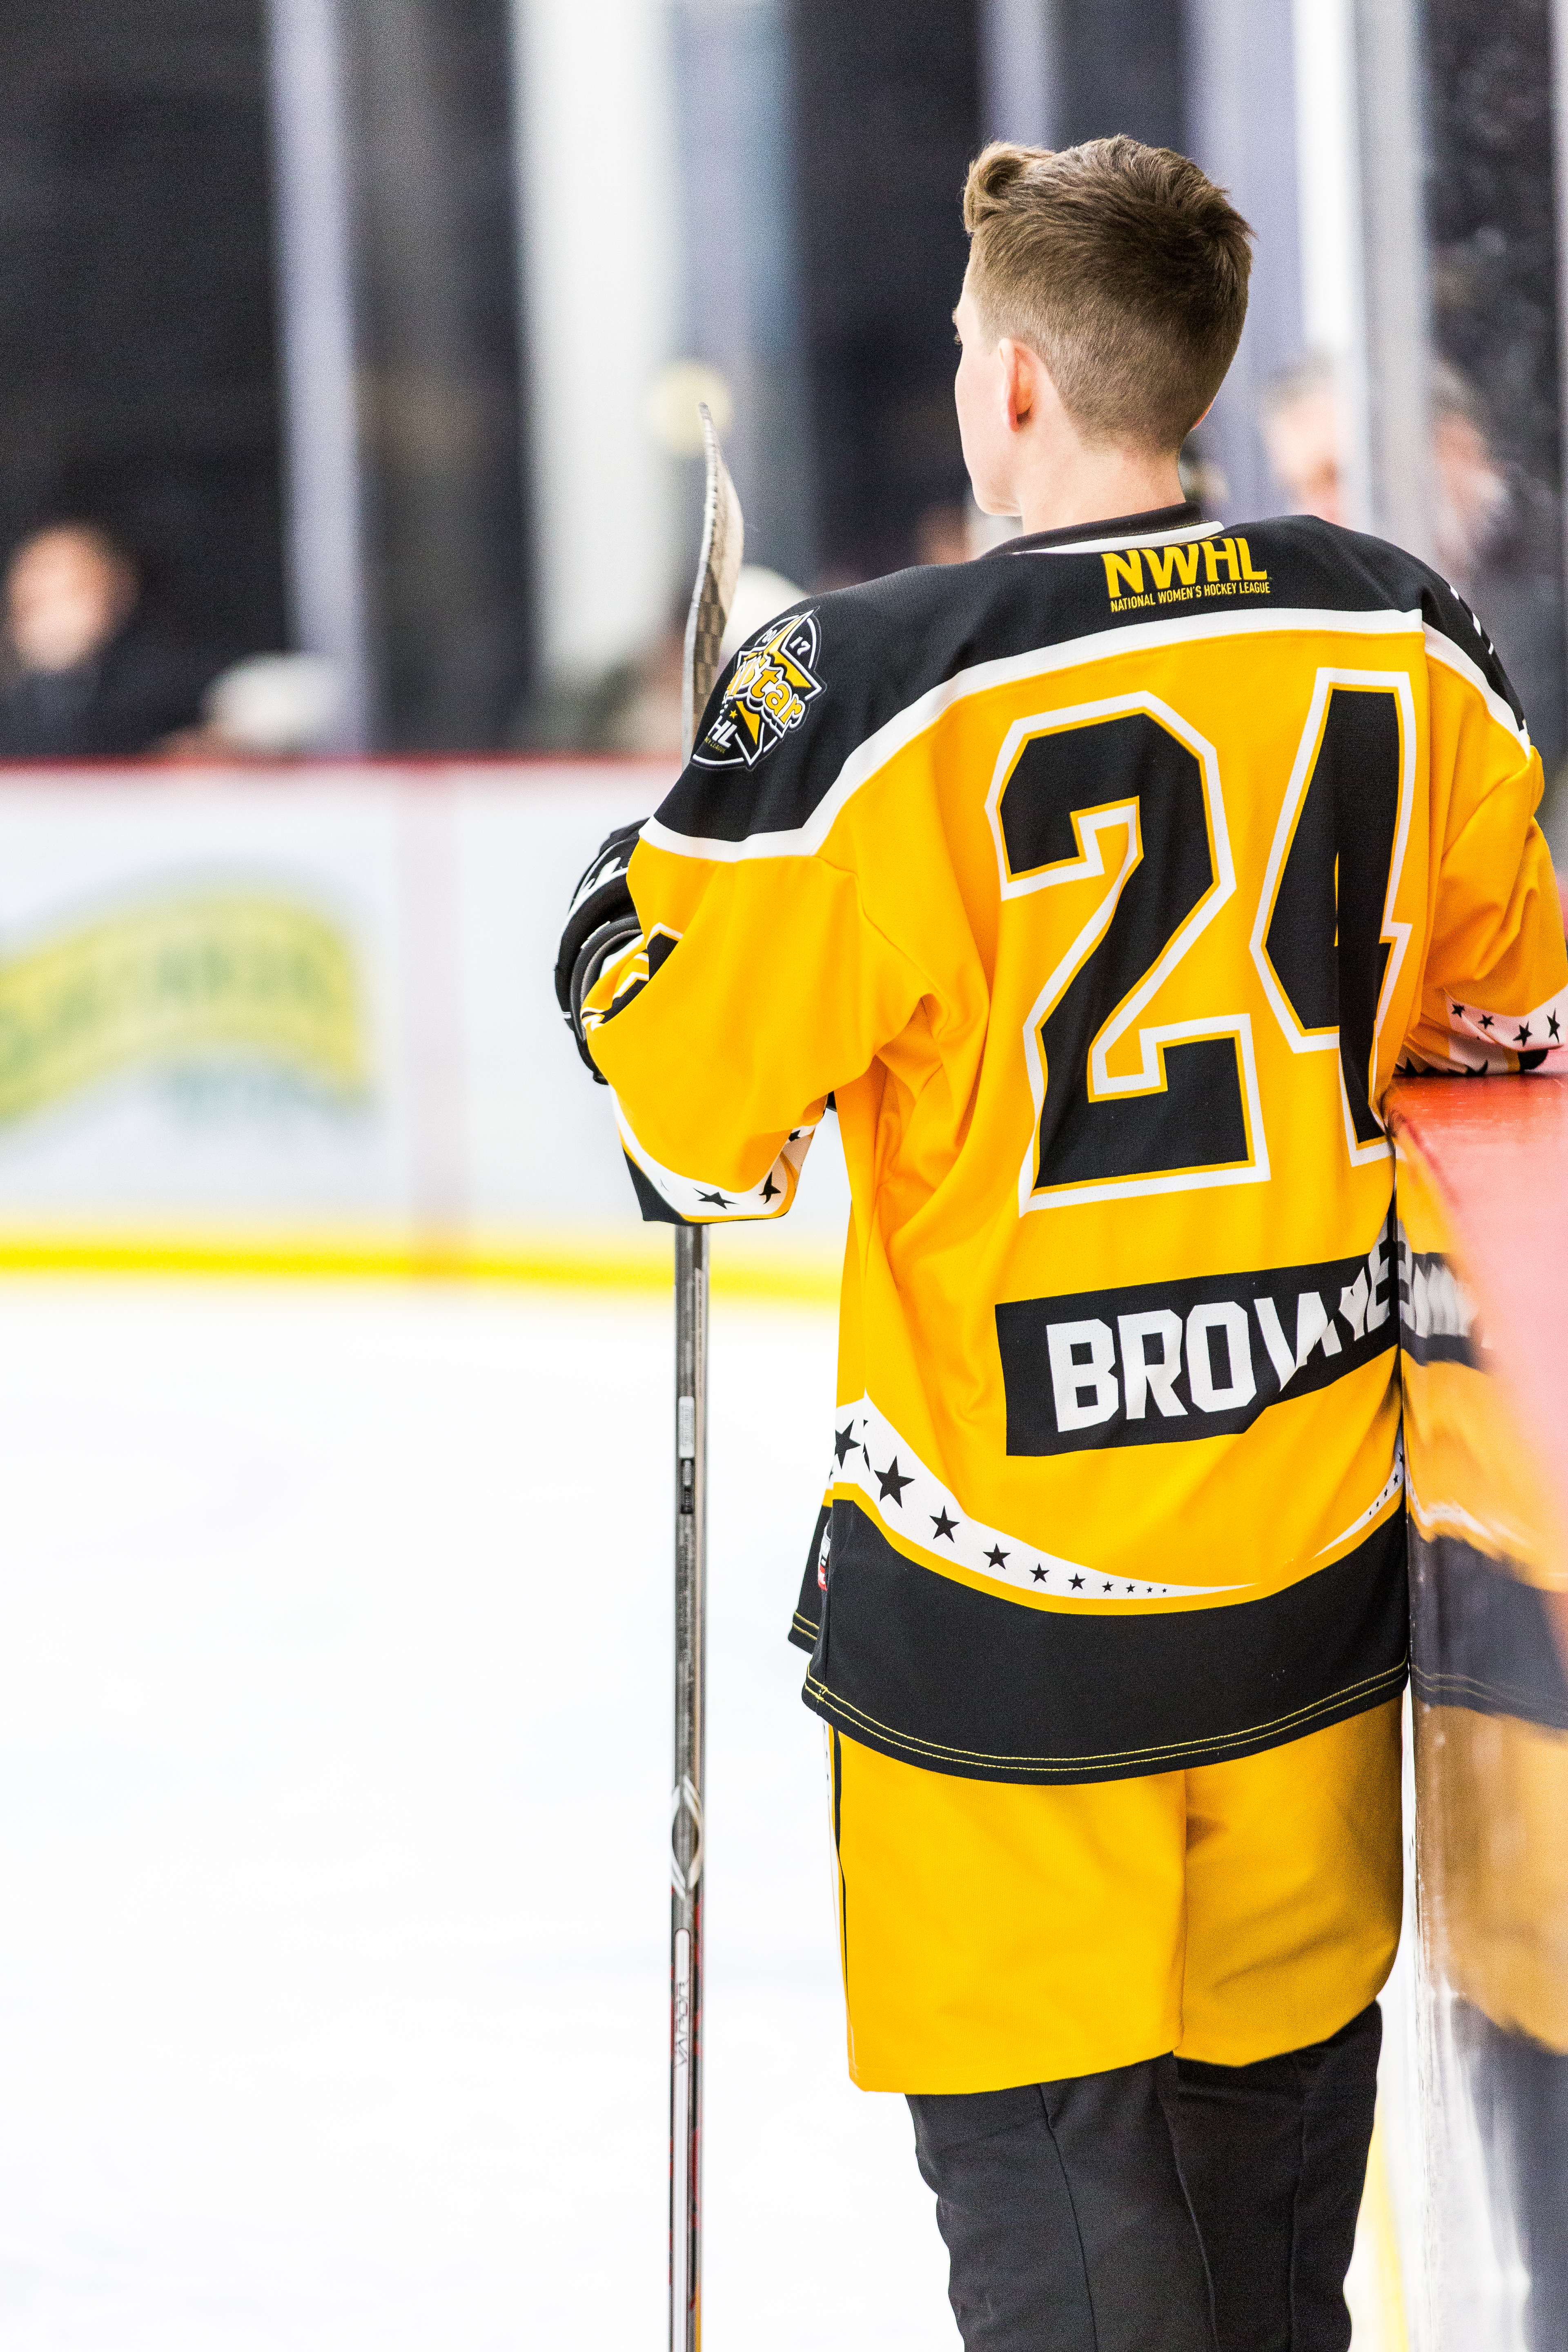 NWHL Fan Feature - When a Jersey is More than Just a Jersey 20e79ebcfd4